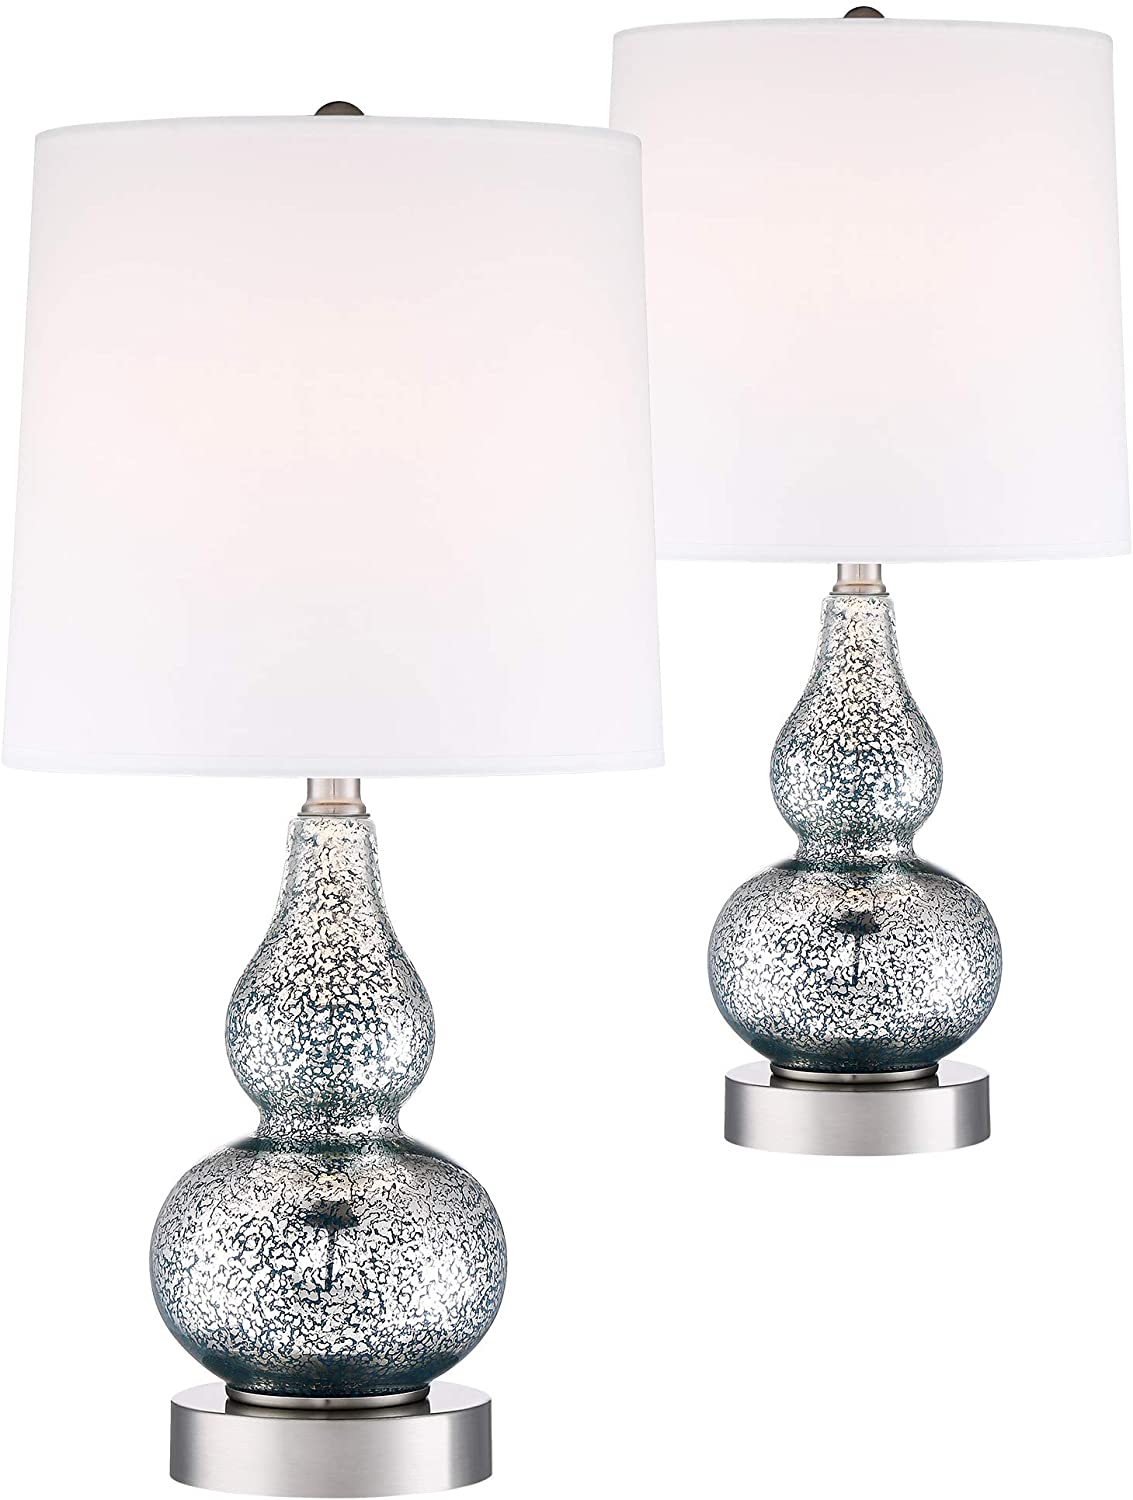 Castine Turquoise Glass USB Lamp Set with Table Top Dimmers - 360 Lighting